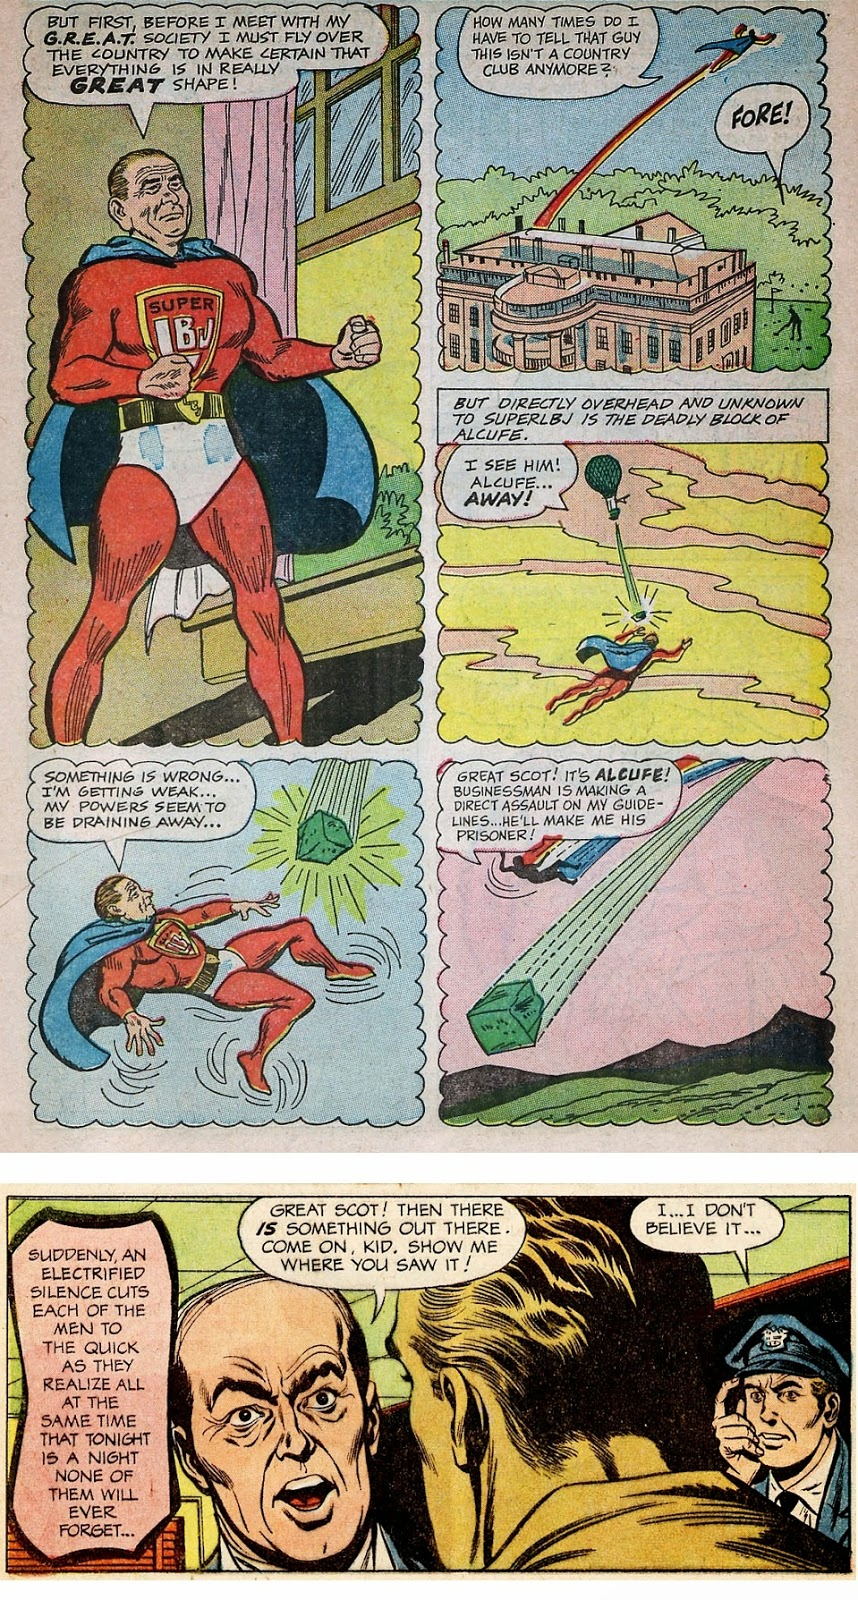 Great Society Comic Book, Flying Saucers 1 'Great Scot'